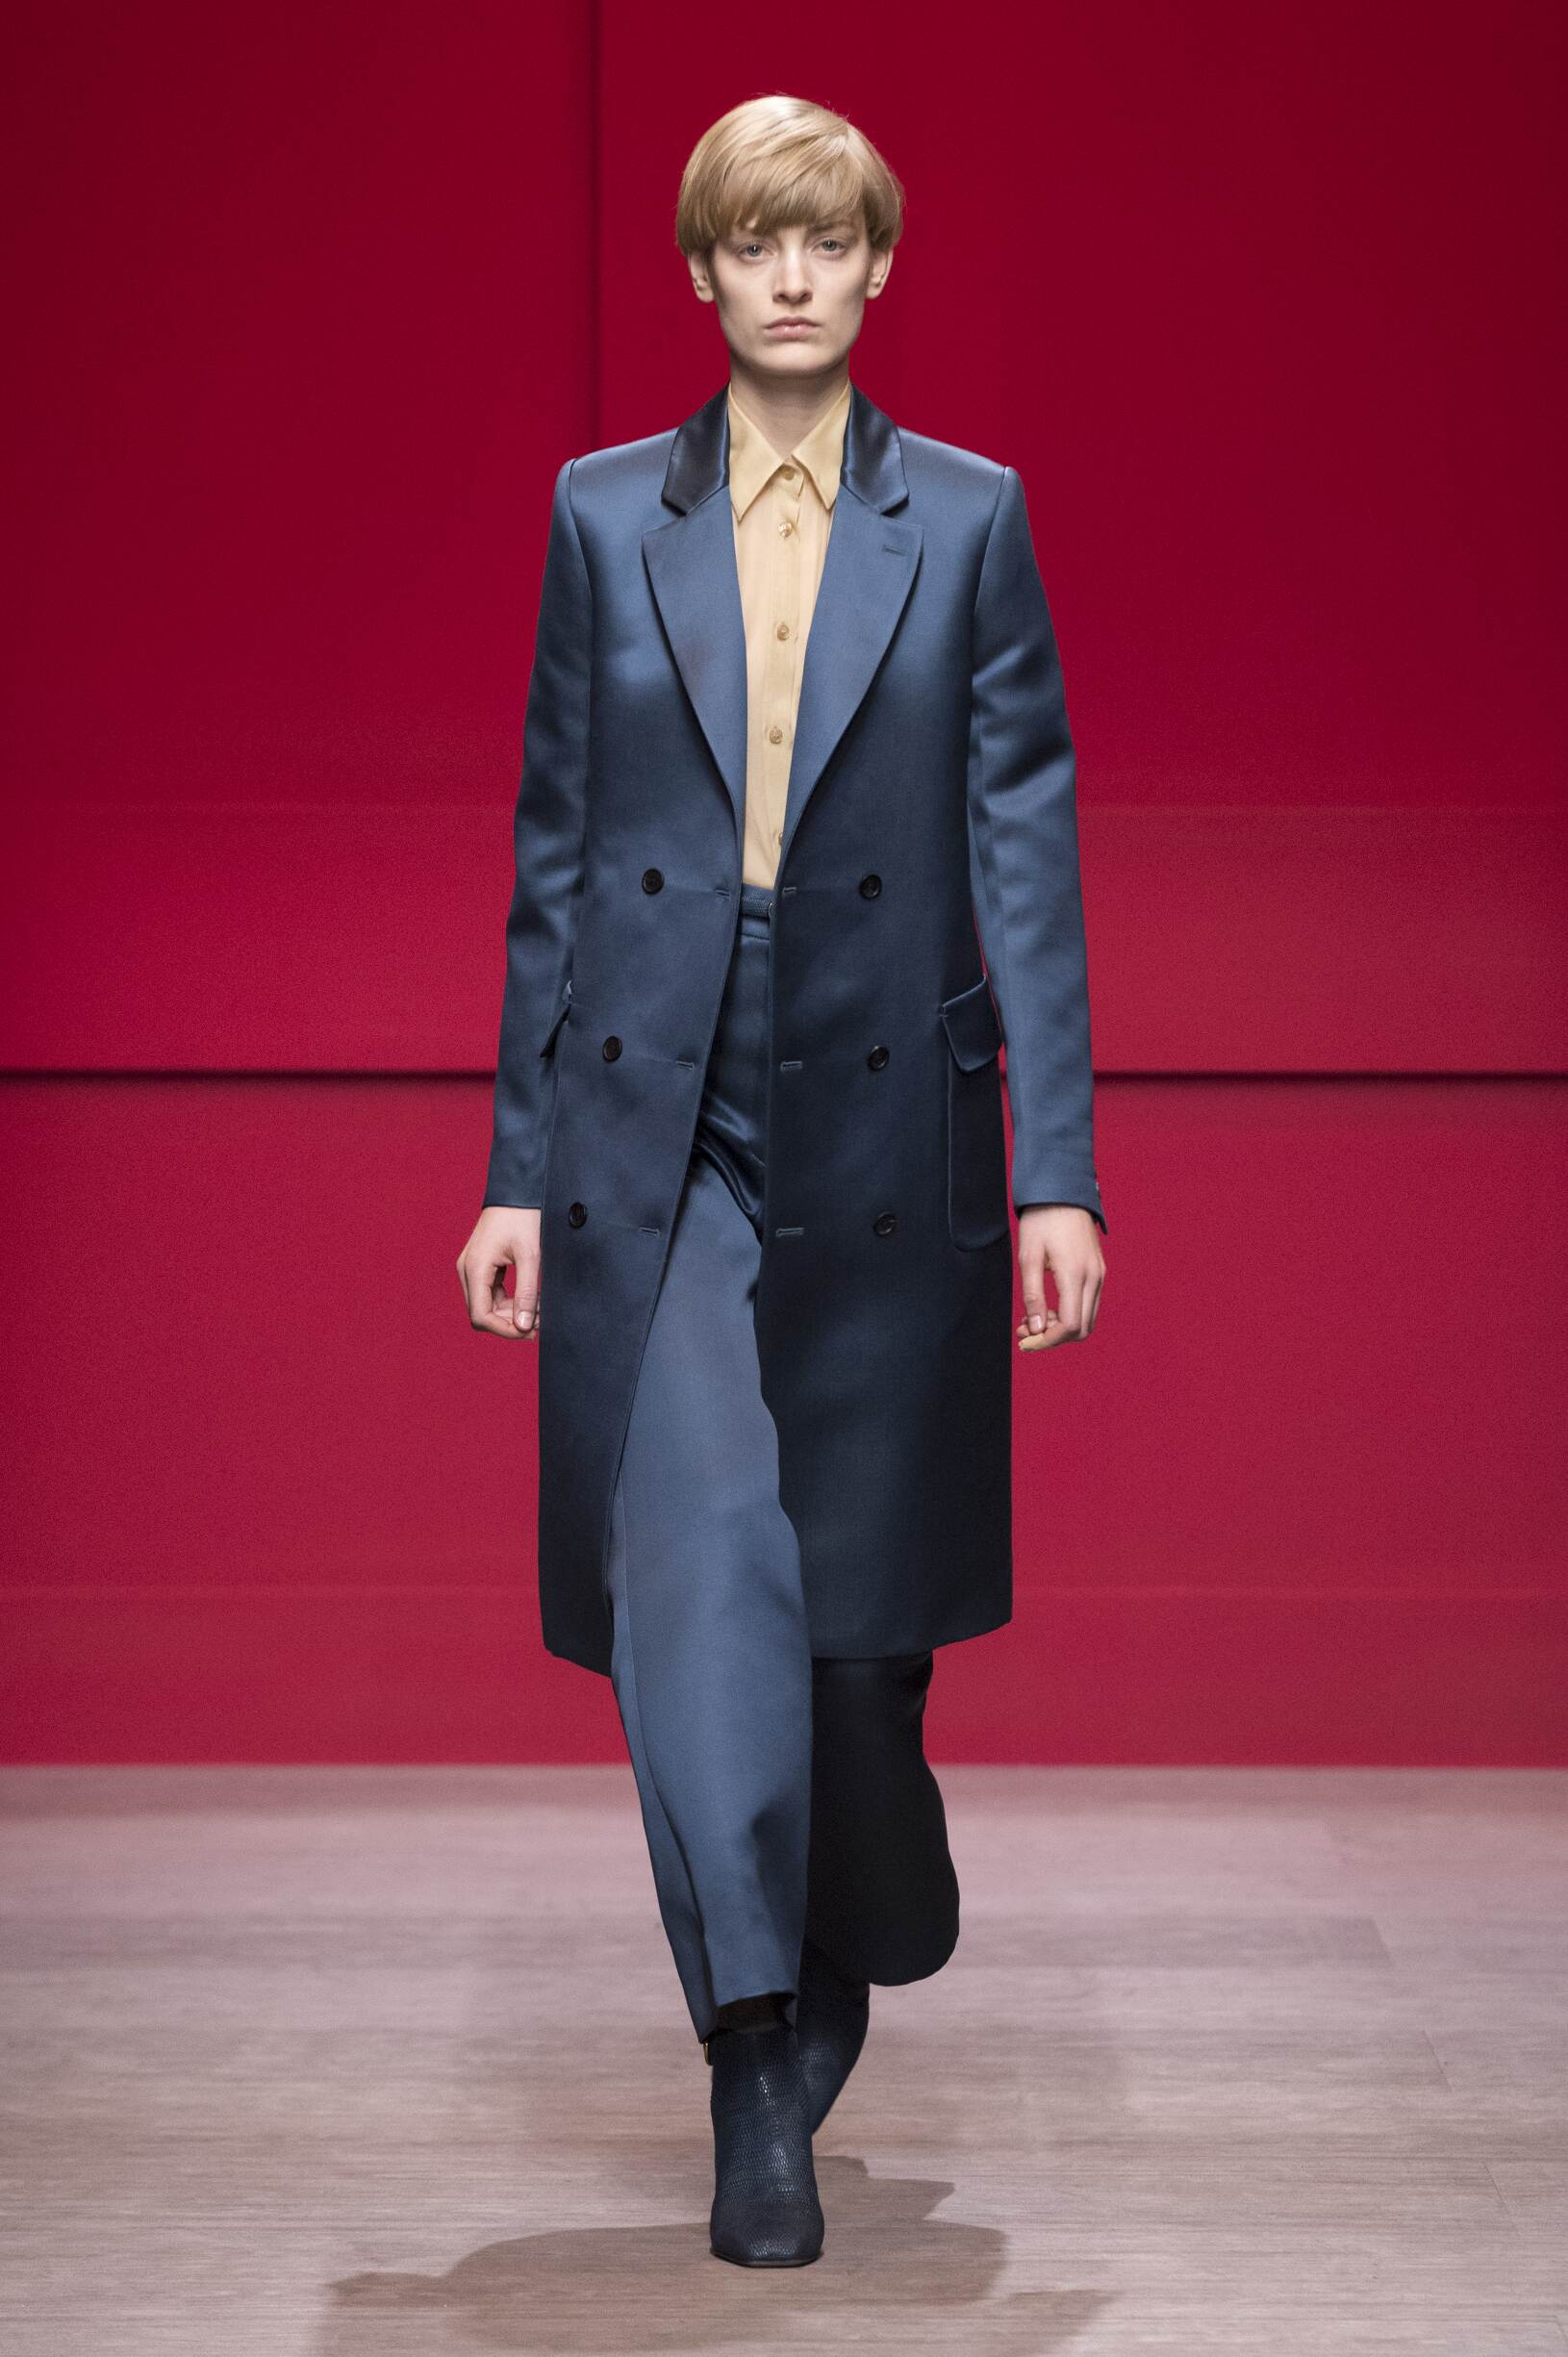 Woman FW 2018-19 Salvatore Ferragamo Fashion Show Milan